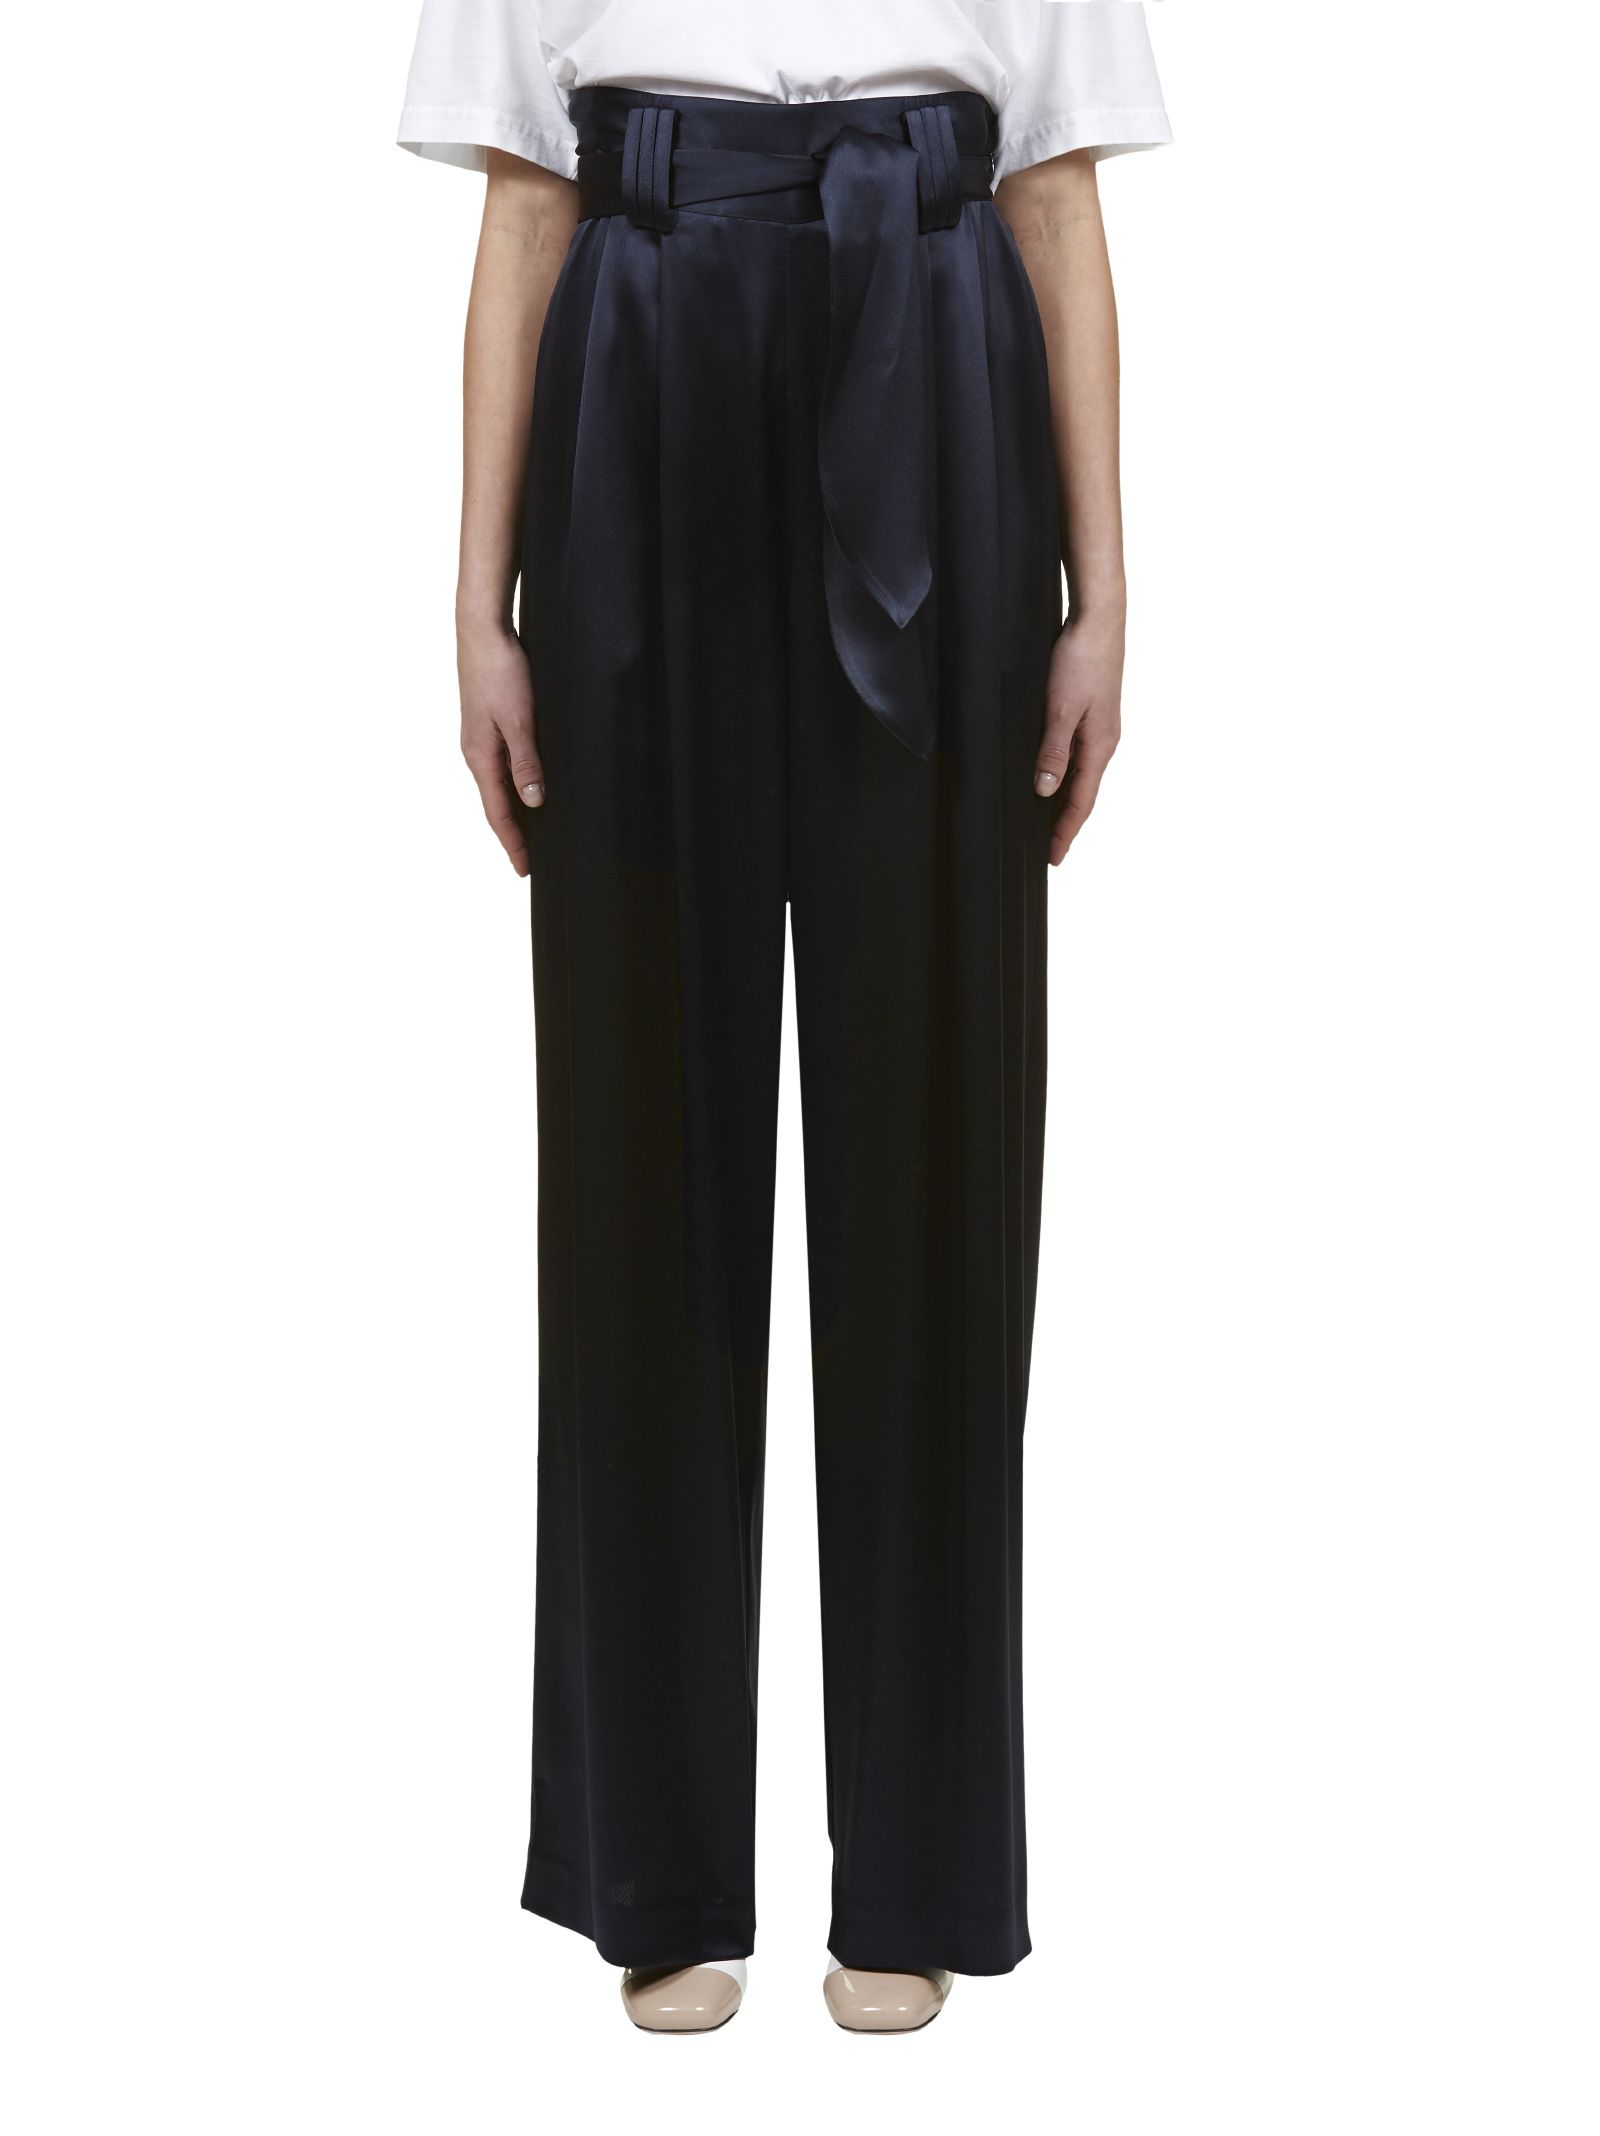 Tory Burch Wide Leg Trousers